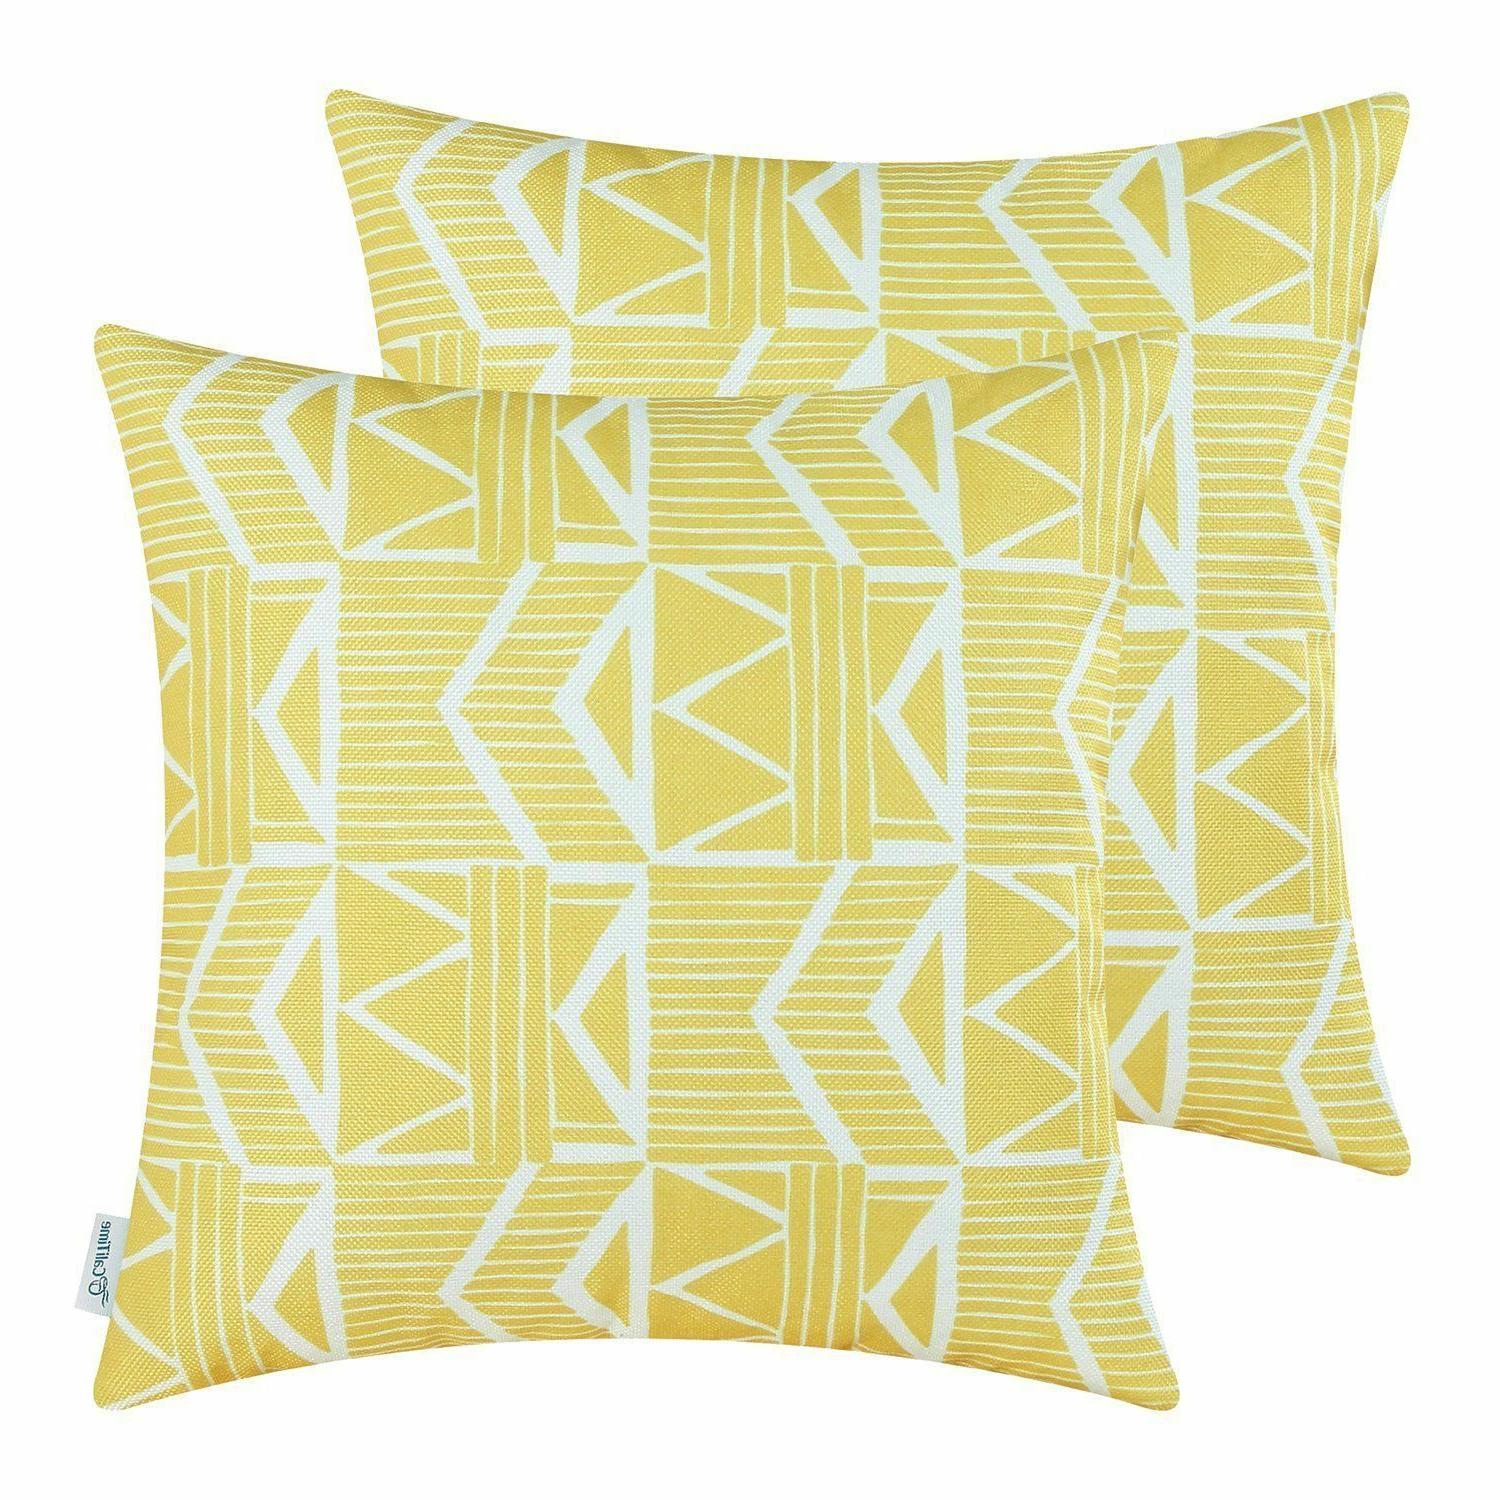 Yellow Southwest Modern, CaliTime Throw Pillow Covers 18x18,